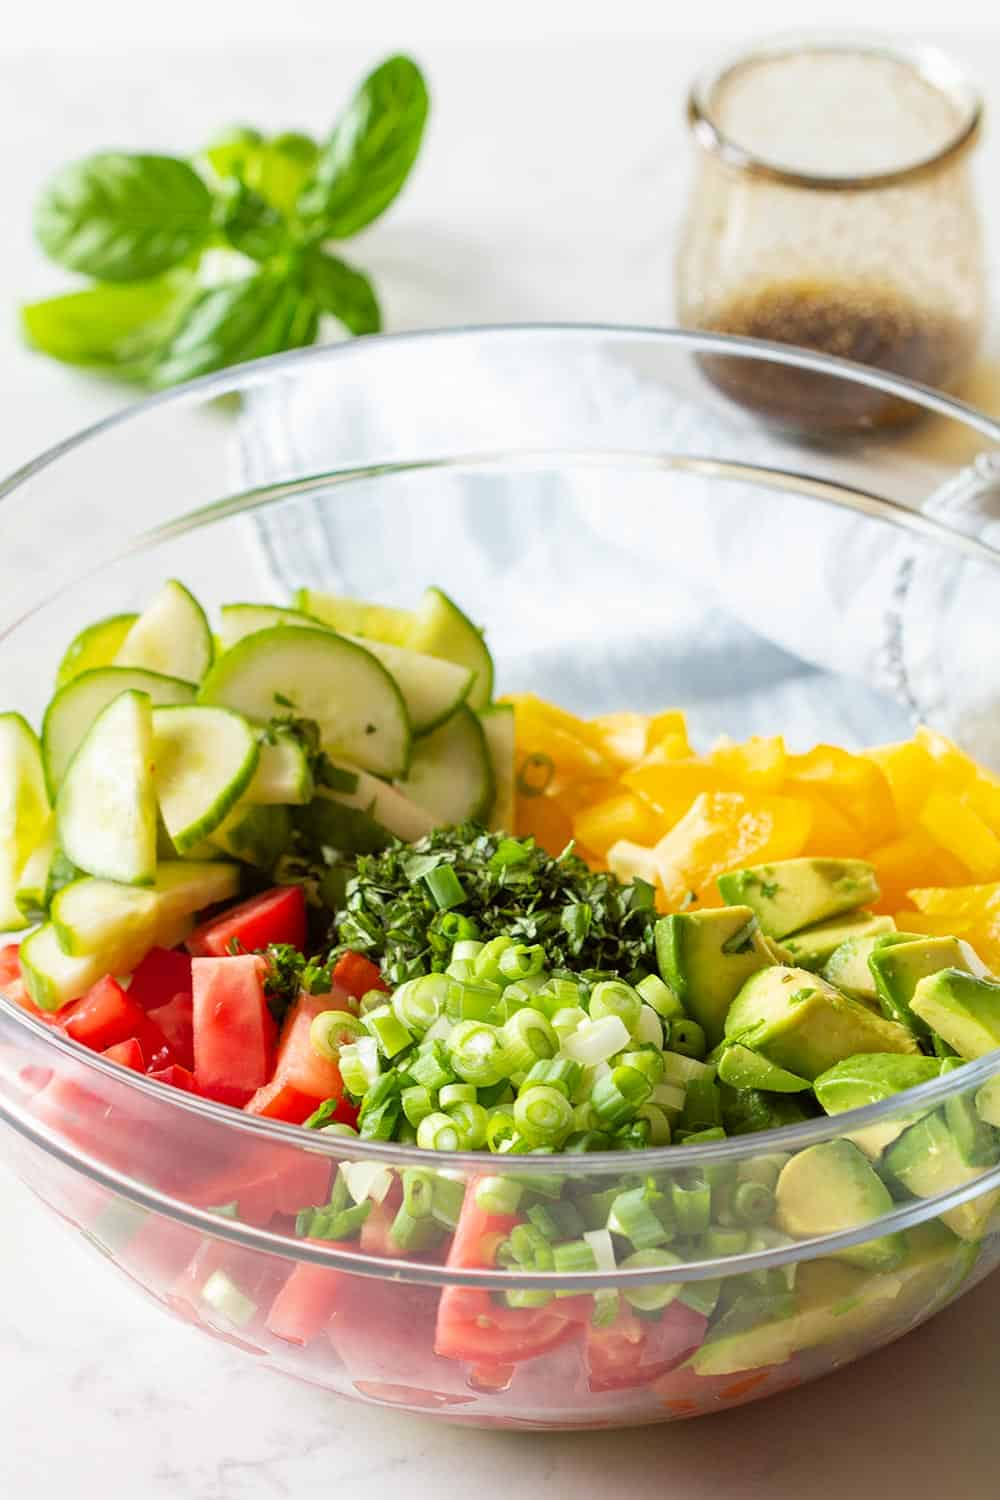 Cucumber Tomato Avocado Salad Recipe in a glass bowl and balsamic vinaigrette in a separate glass jar